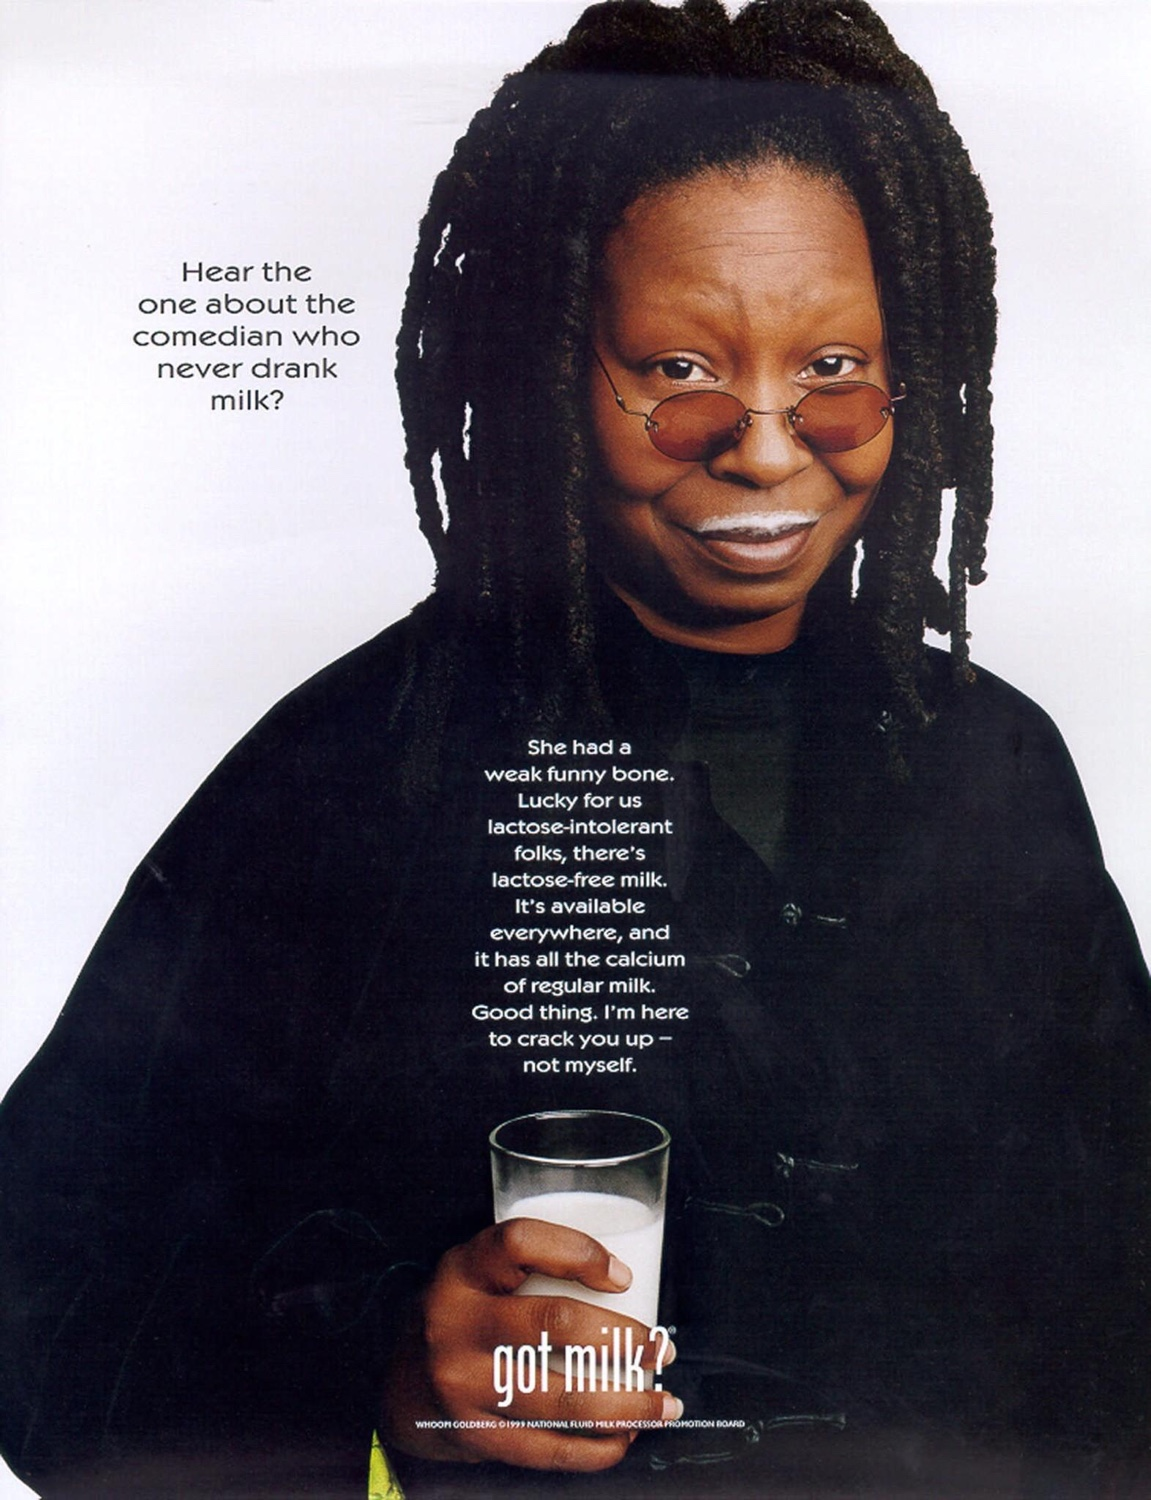 'Got Milk?' is a long-running slogan promoting milk consumption in theUSA.Whoopi Goldberg appears in a 1999 advert sporting the well-known milk mustache. (Bozell Public Relations via Associated Press). Image viaLos Angeles Times.